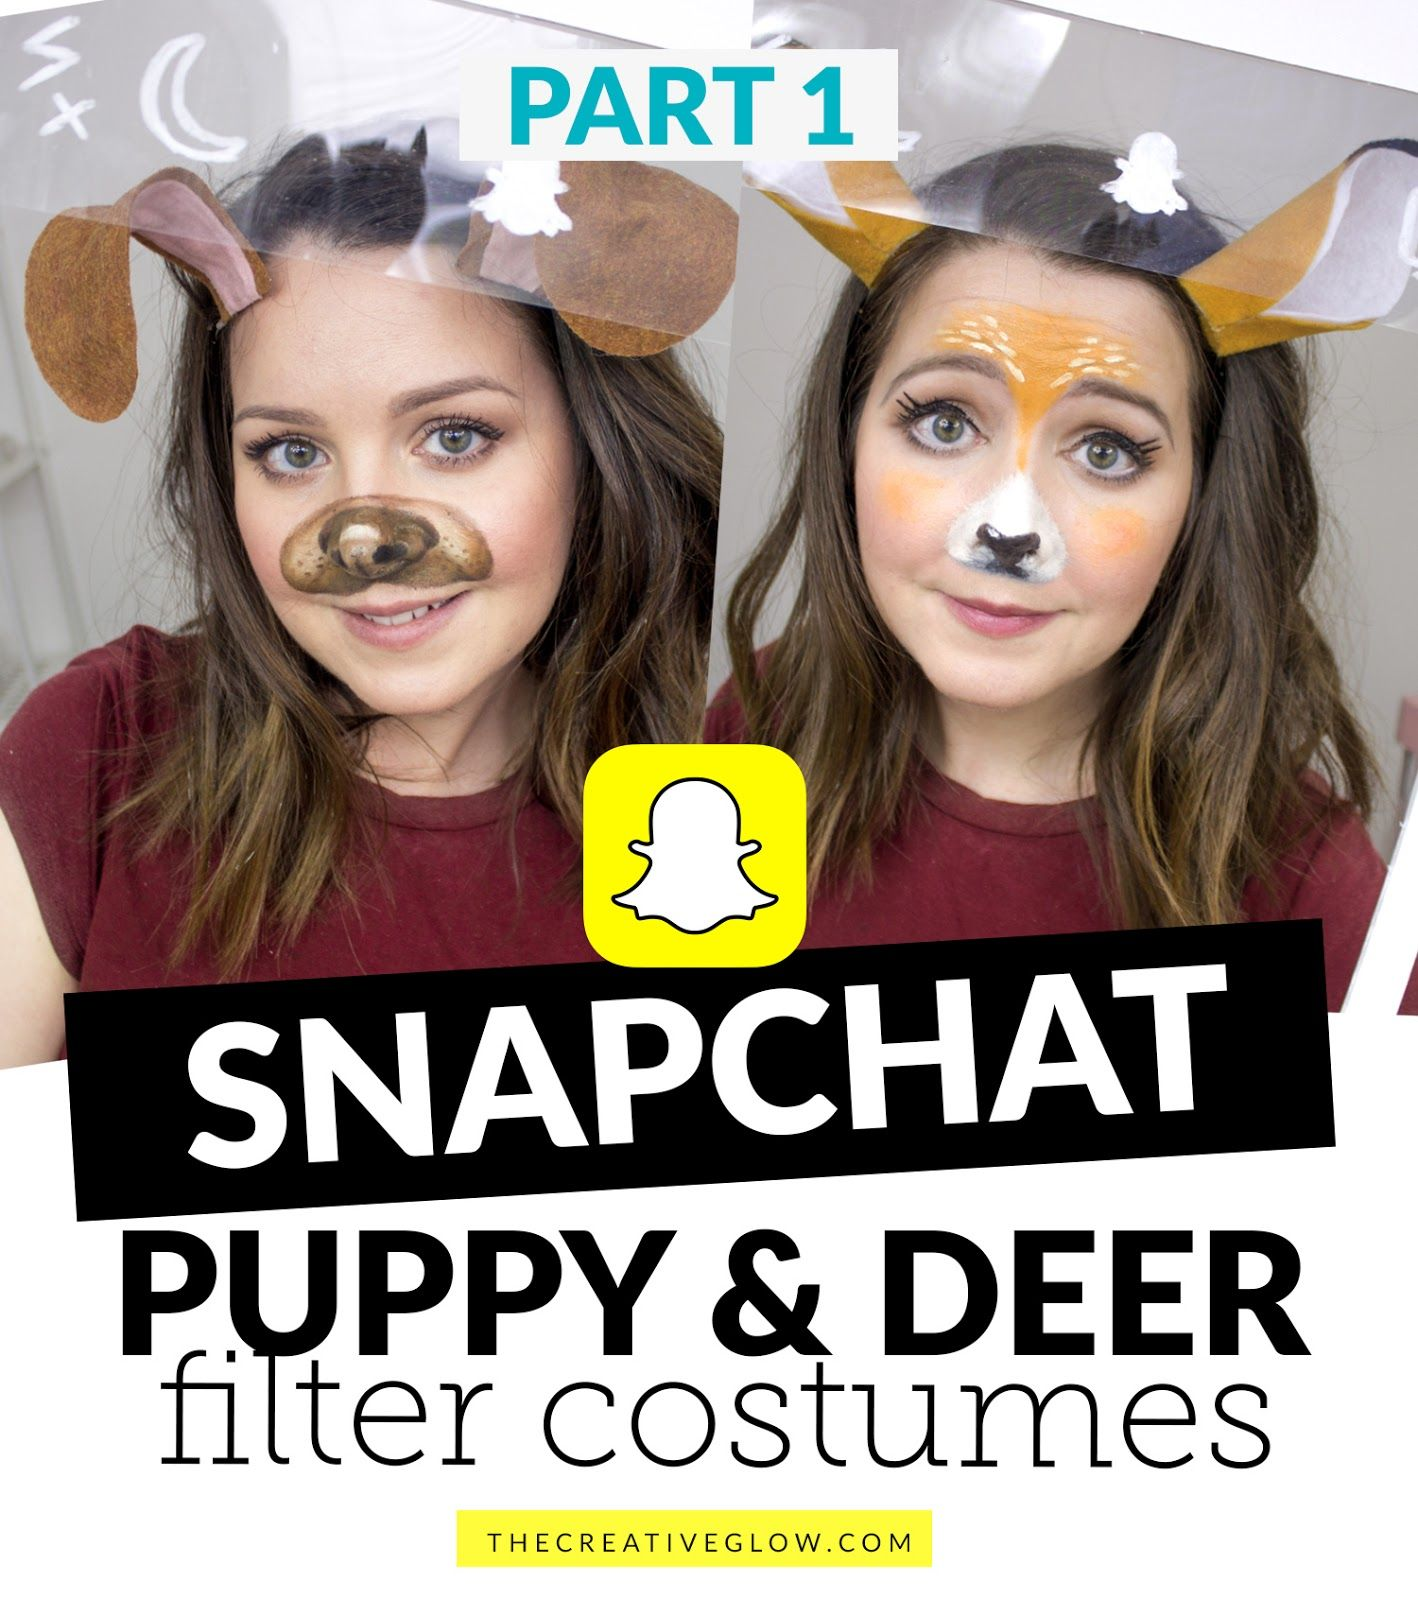 SnapChat Puppy & Deer Filter Costumes PART 1 A video